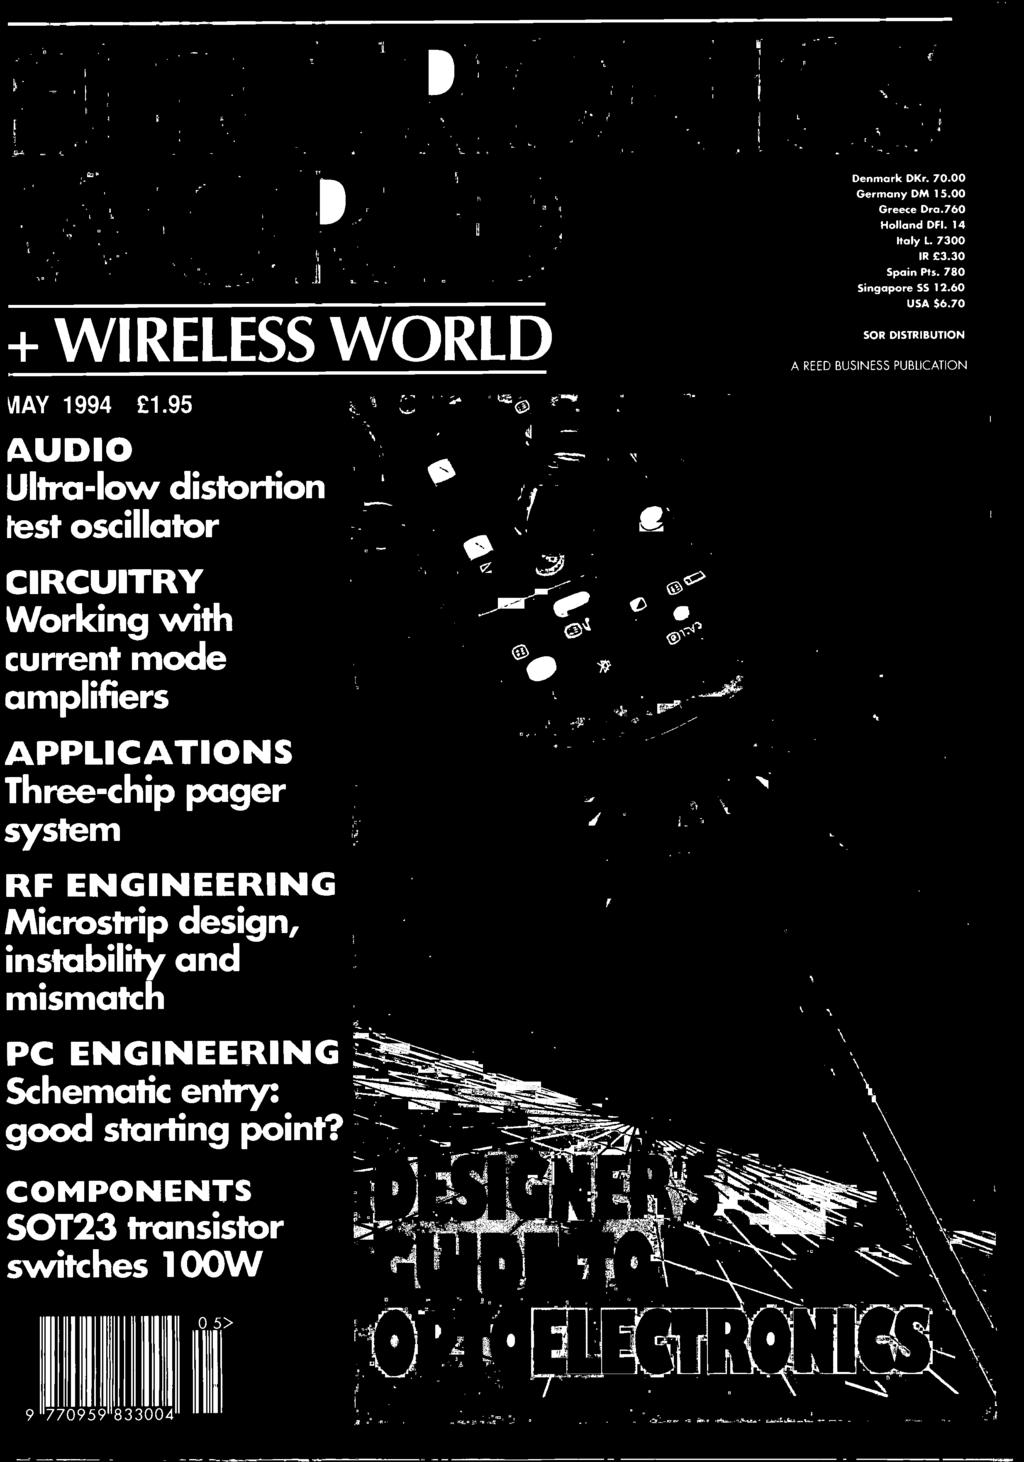 World Wireless Pdf Kembrey Wiring Systems Amplifiers Applications Three Chip Pager System Rf Engineering Microstrip Design